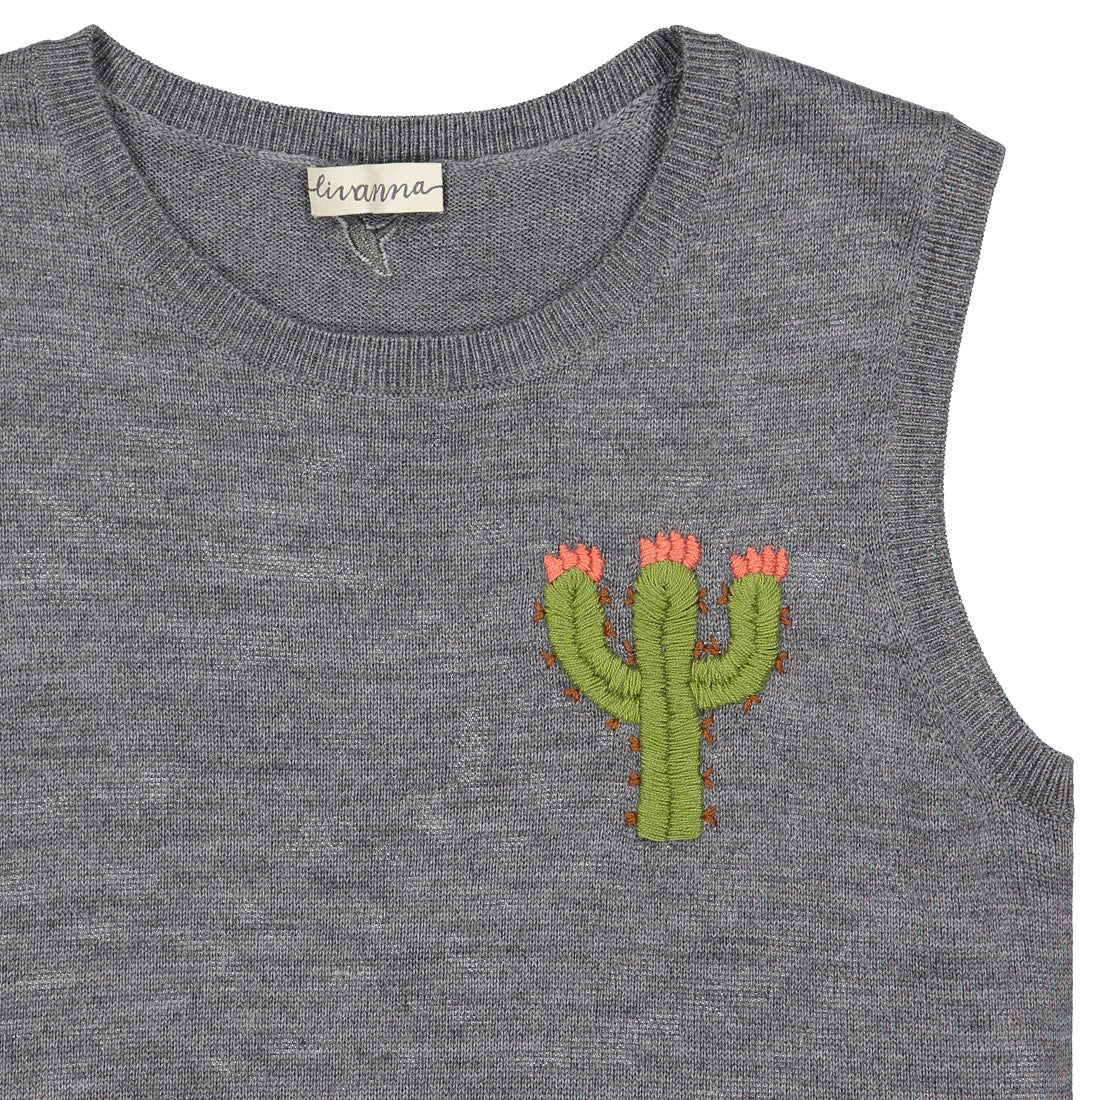 Sweater Cactus x Livanna